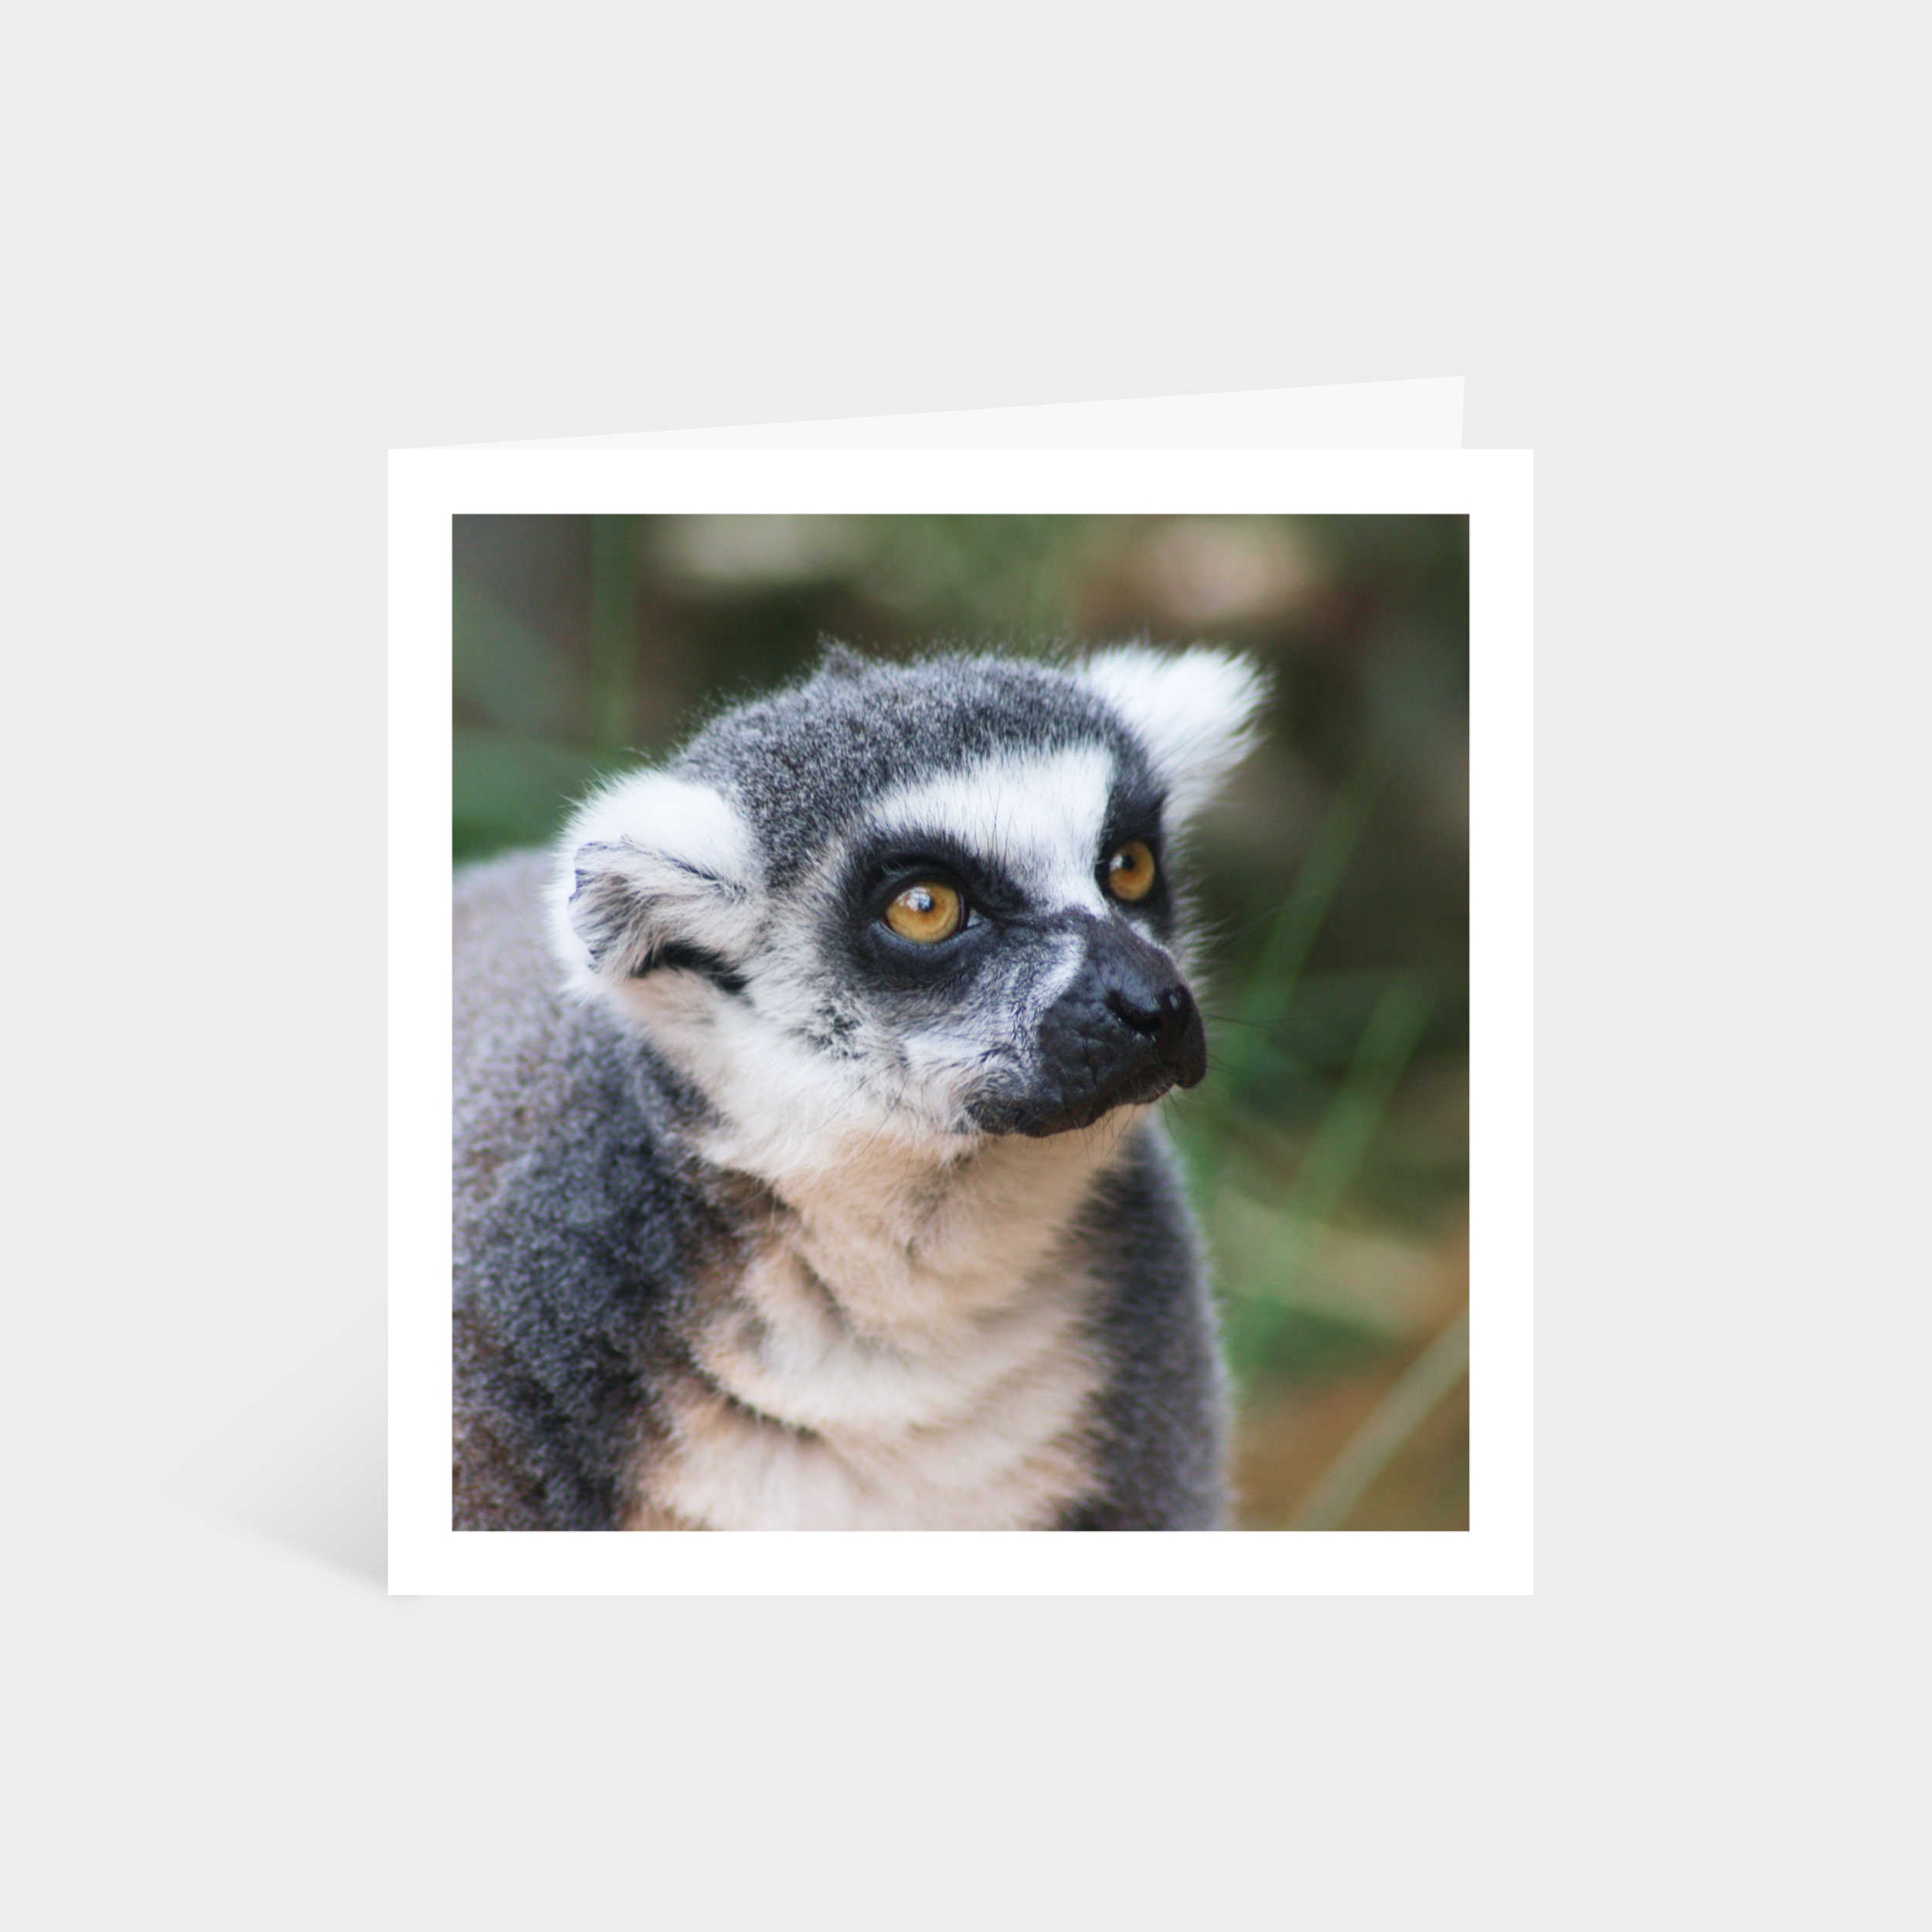 Standing square card with a close-up photo of a wide-eyed lemur/monkey